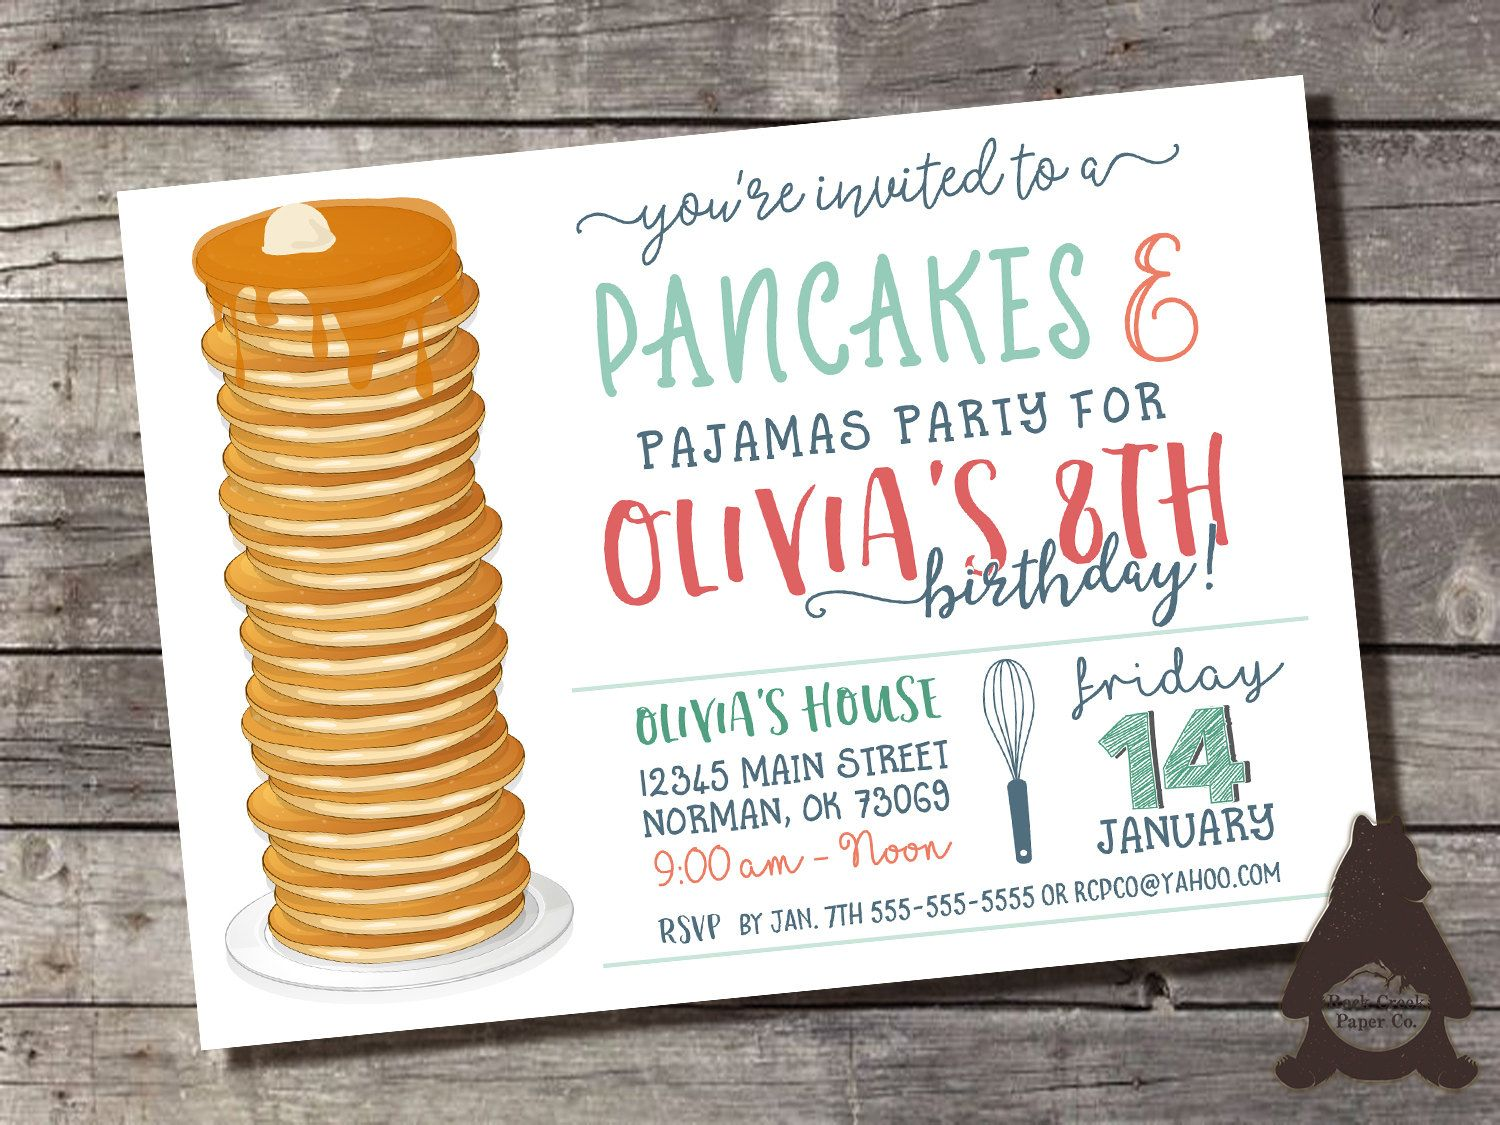 Pancakes and pajamas party invitation pancakes pajamas birthday pancakes pajamas invitation pancakes and pjs pancake breakfast party pancakes and pjs breakfast birthday filmwisefo Gallery